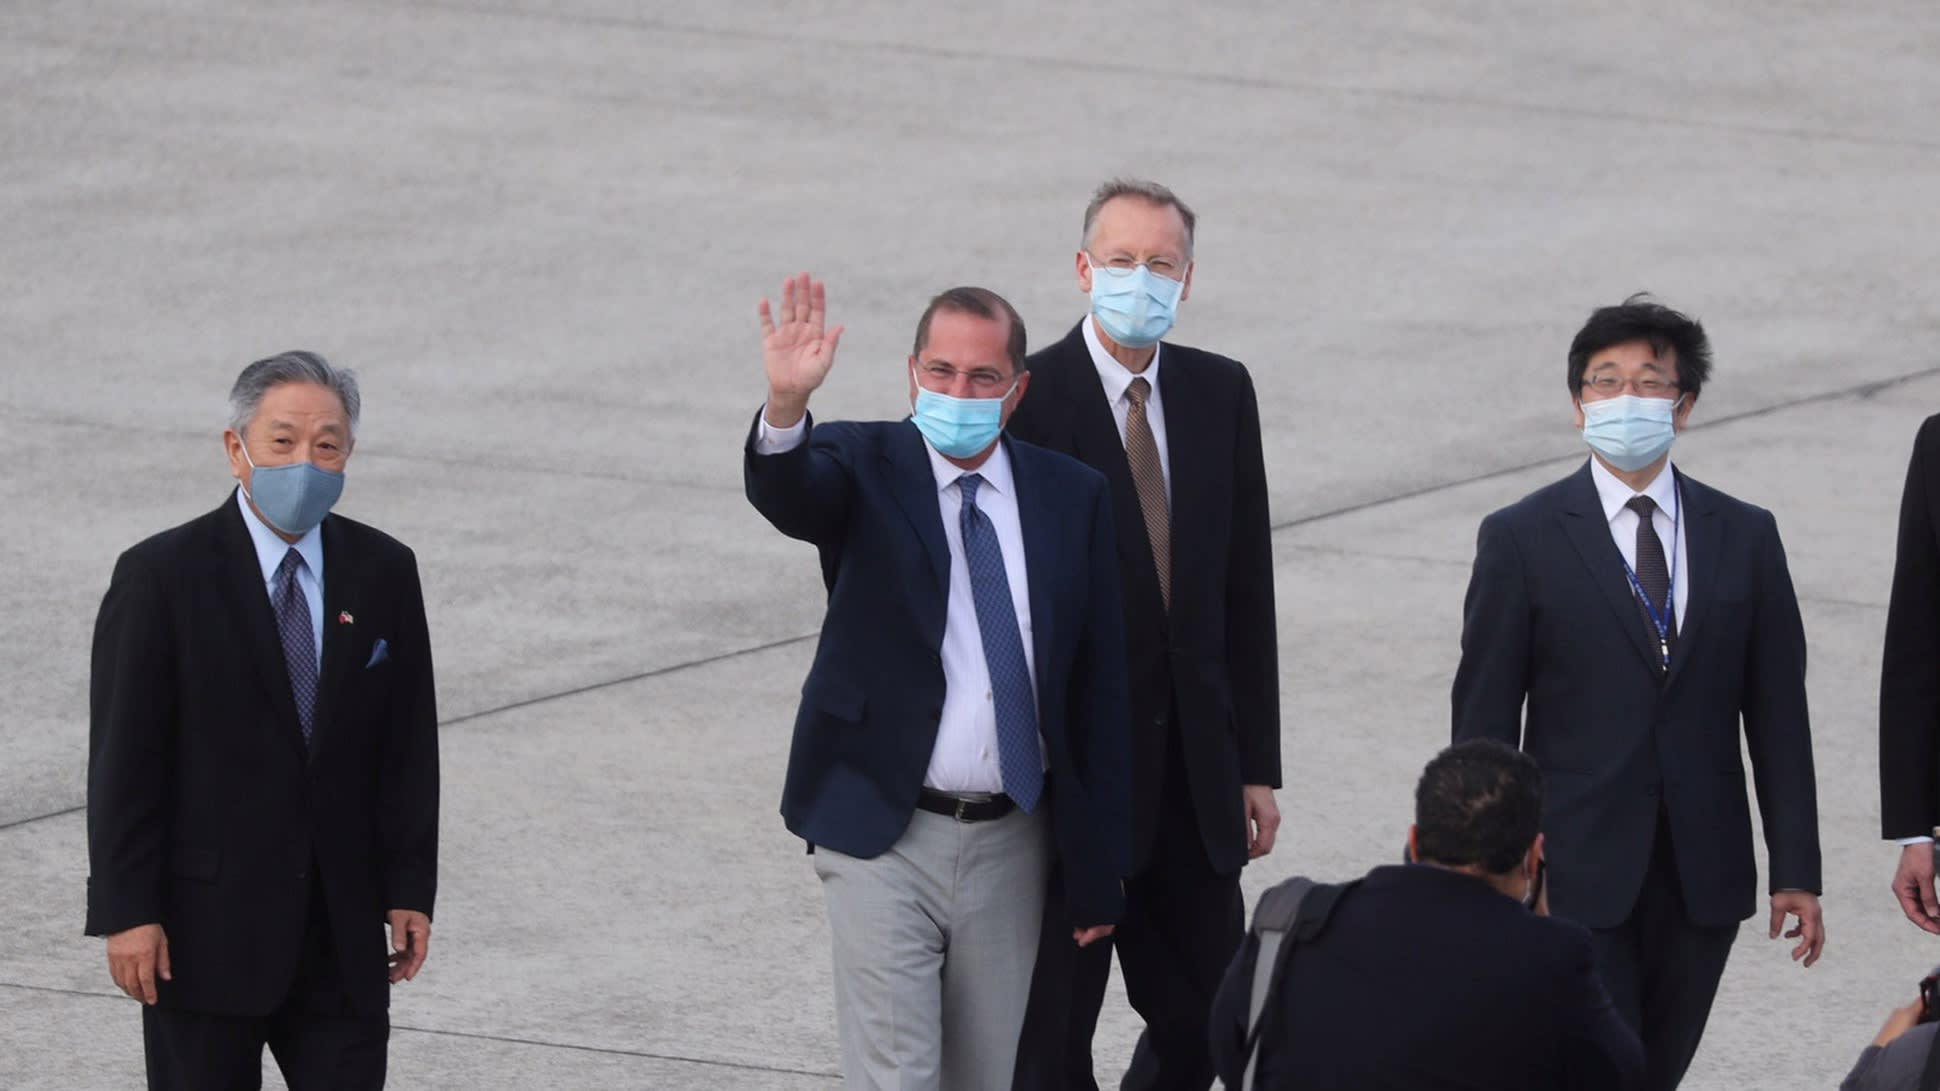 Us Health Chief Lands In Taiwan On Highest Level Trip Since 1979 Nikkei Asia